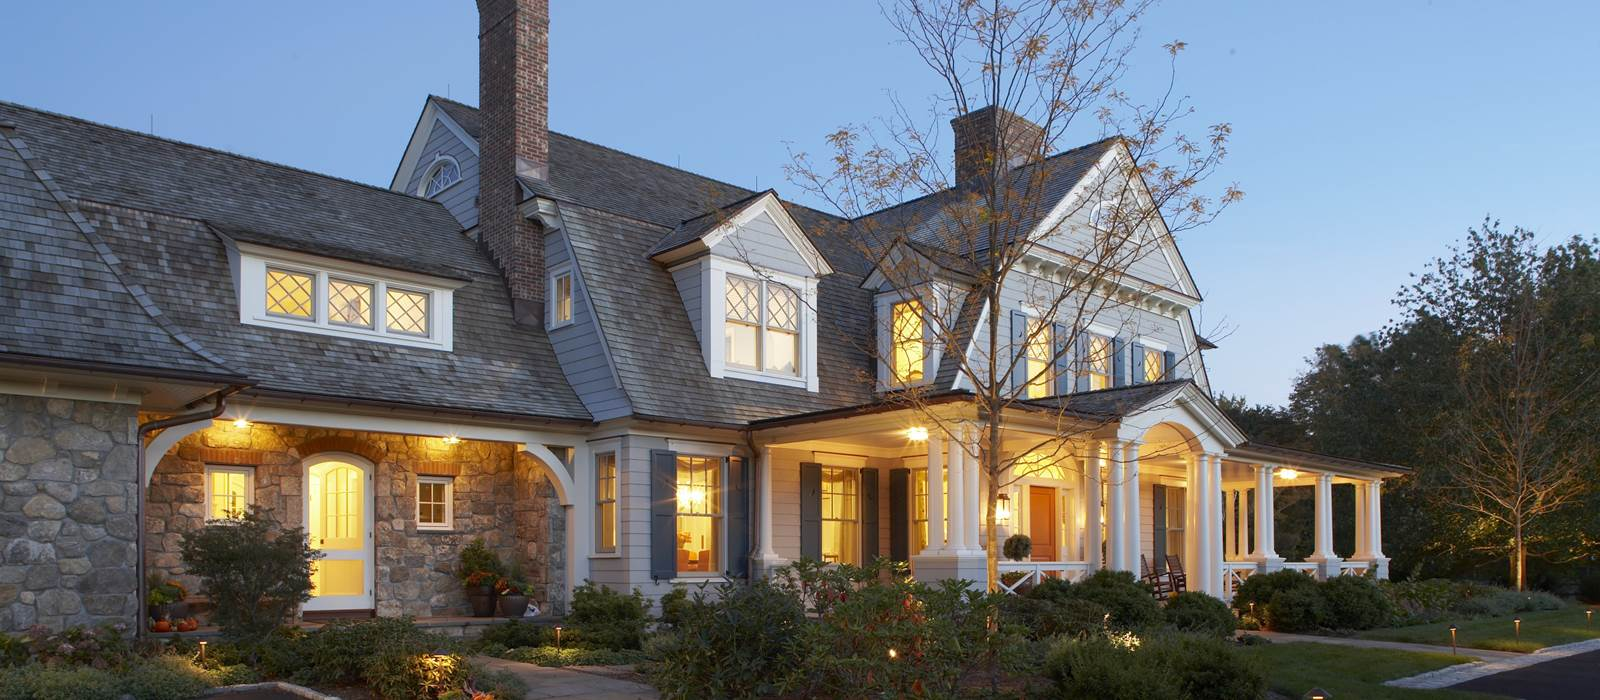 Dutch Colonial exterior at dusk in Rye, NY